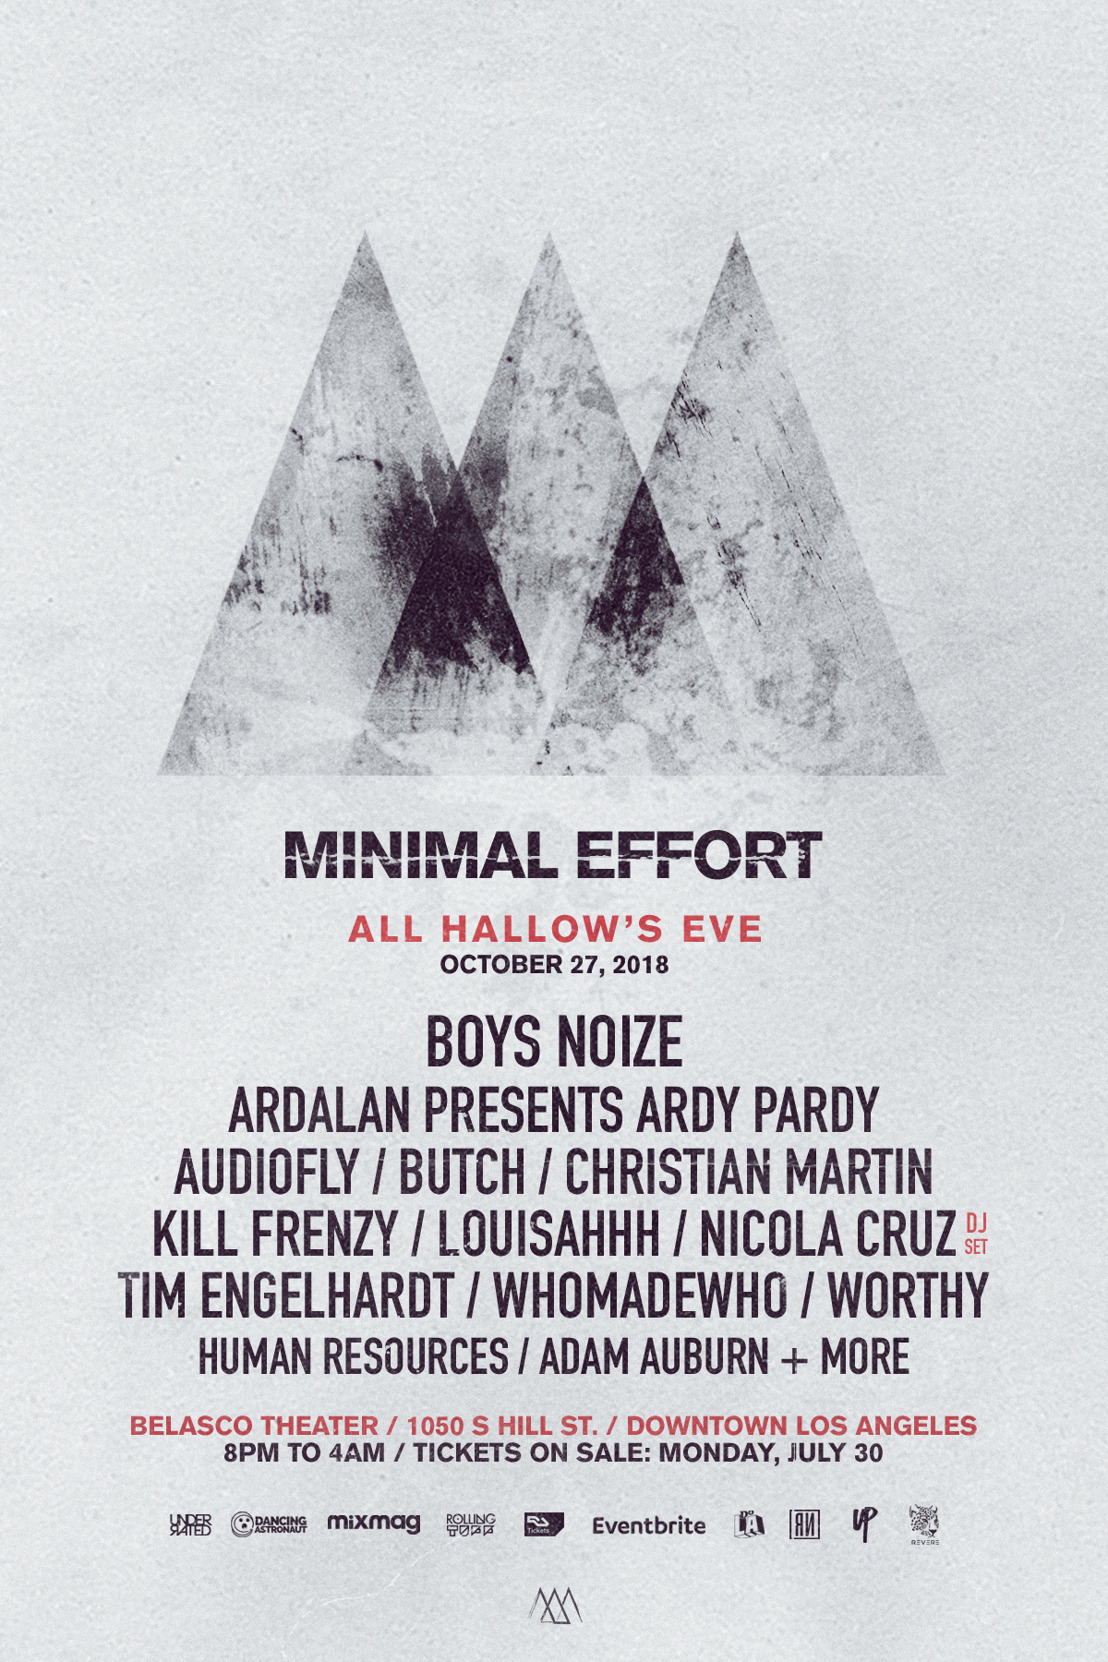 Minimal Effort : All Hallow's Eve Announces Phase 1 Lineup for October 27th Event at Los Angeles' Belasco Theater